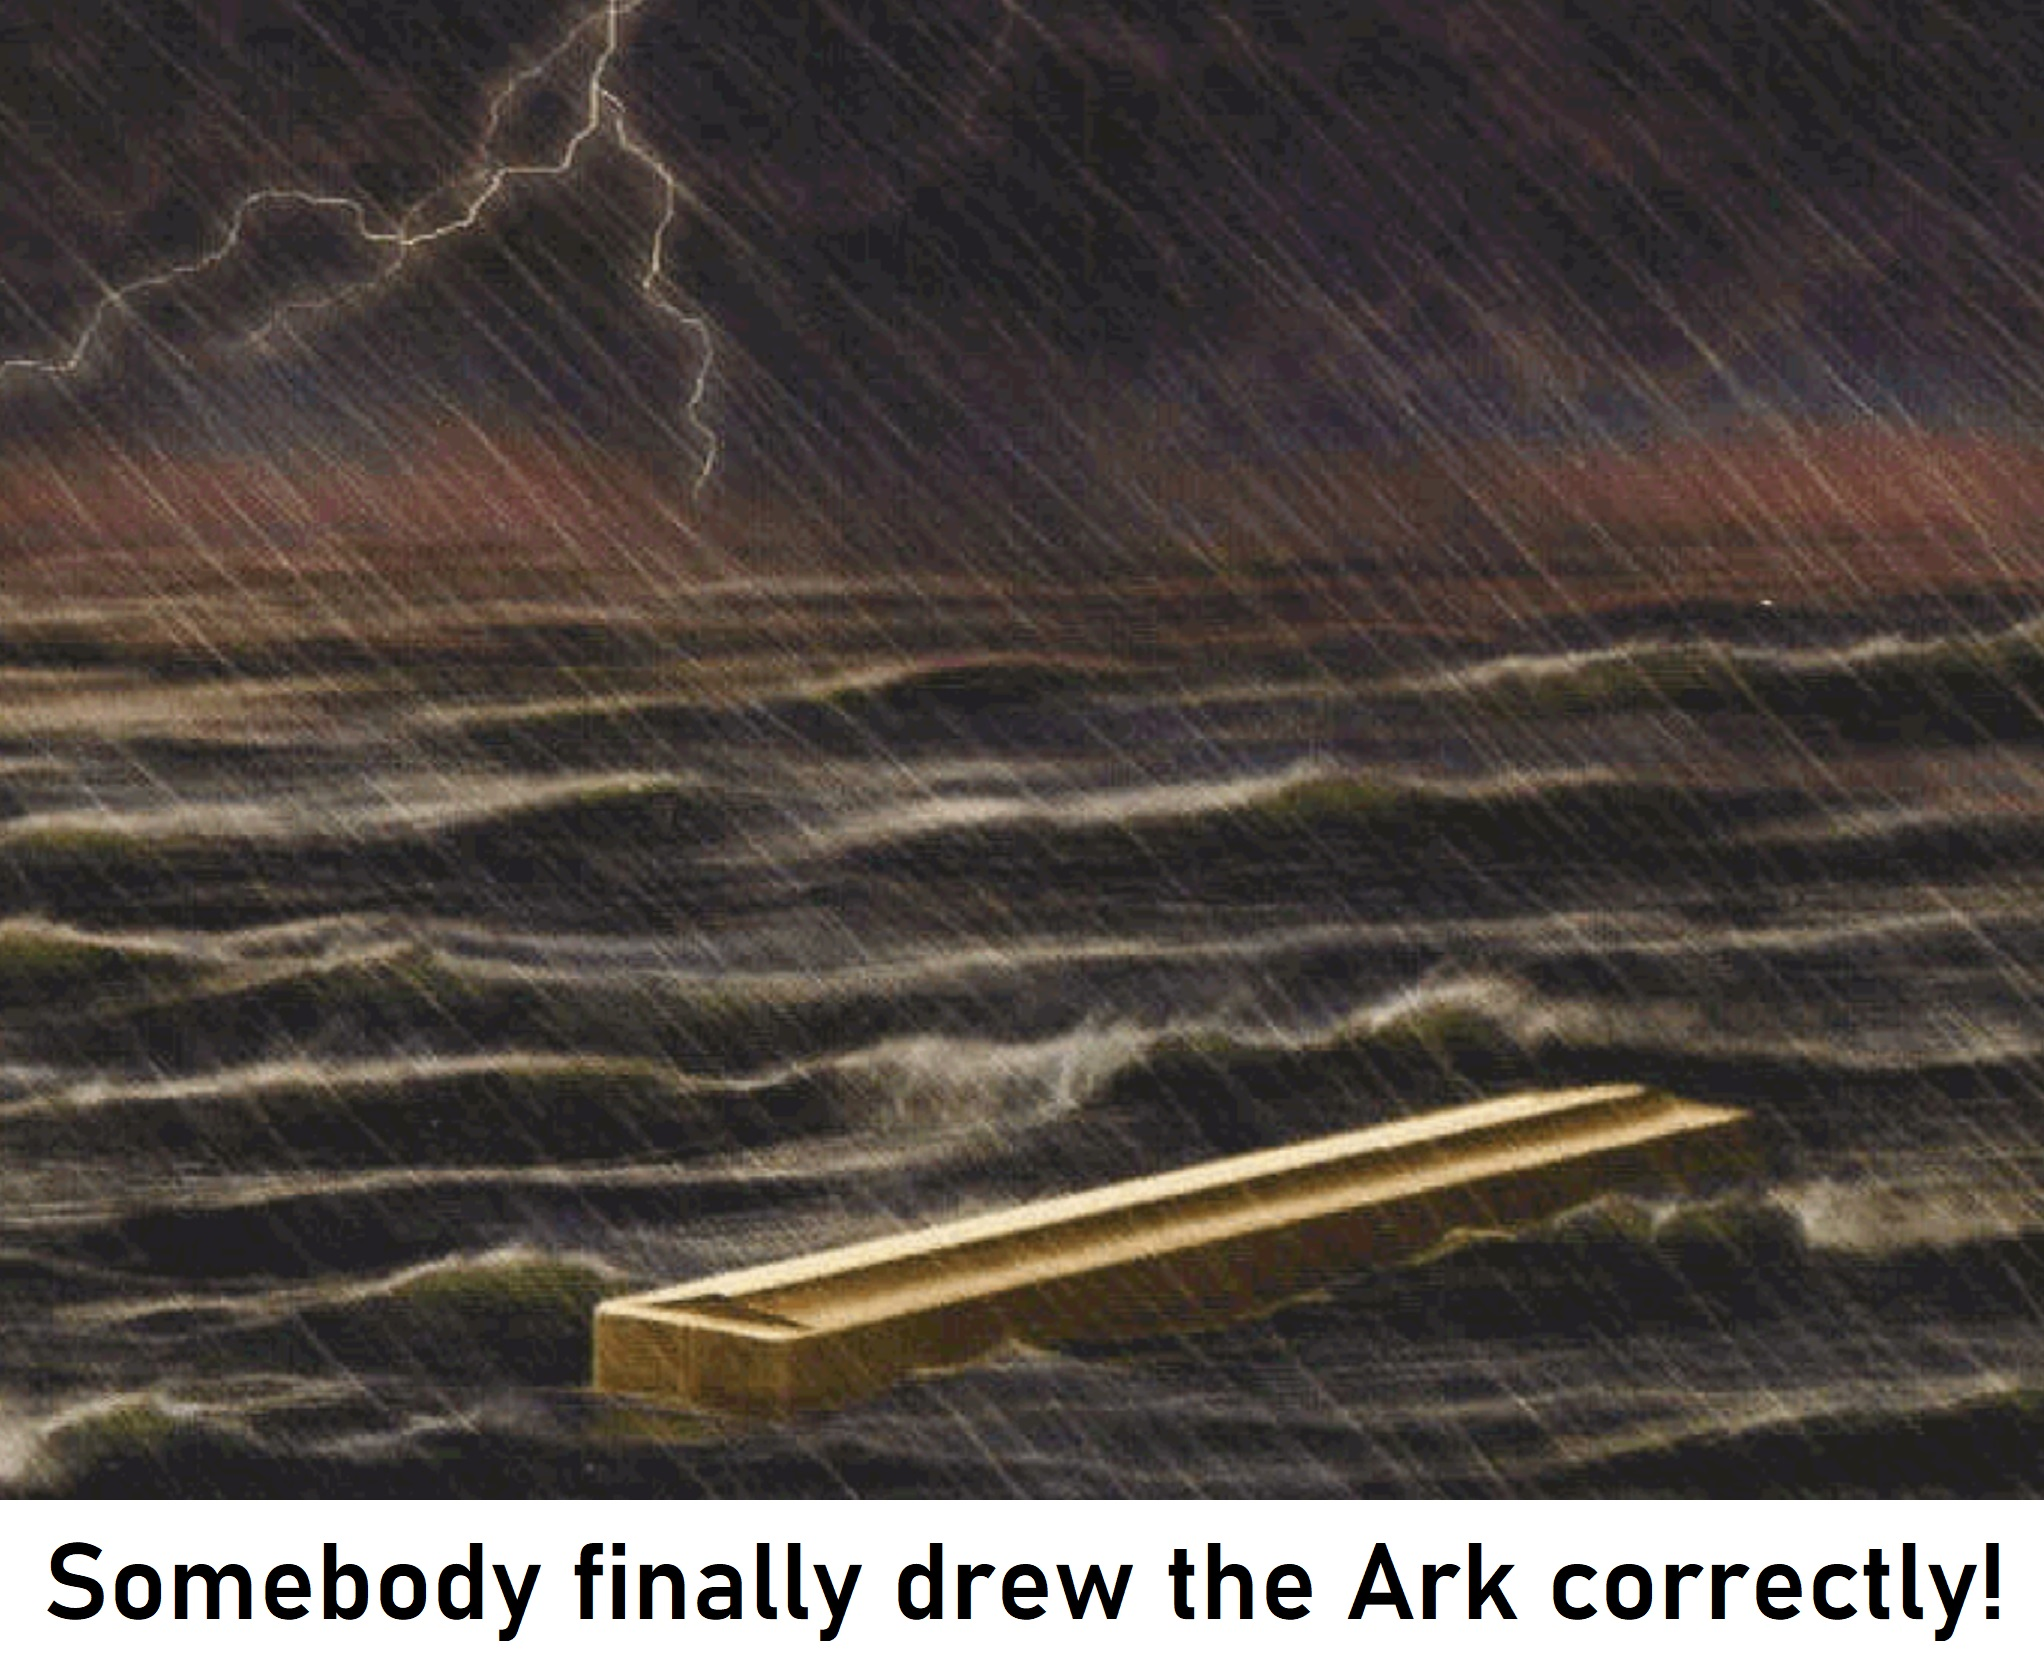 2021-10-09 The Real Ark